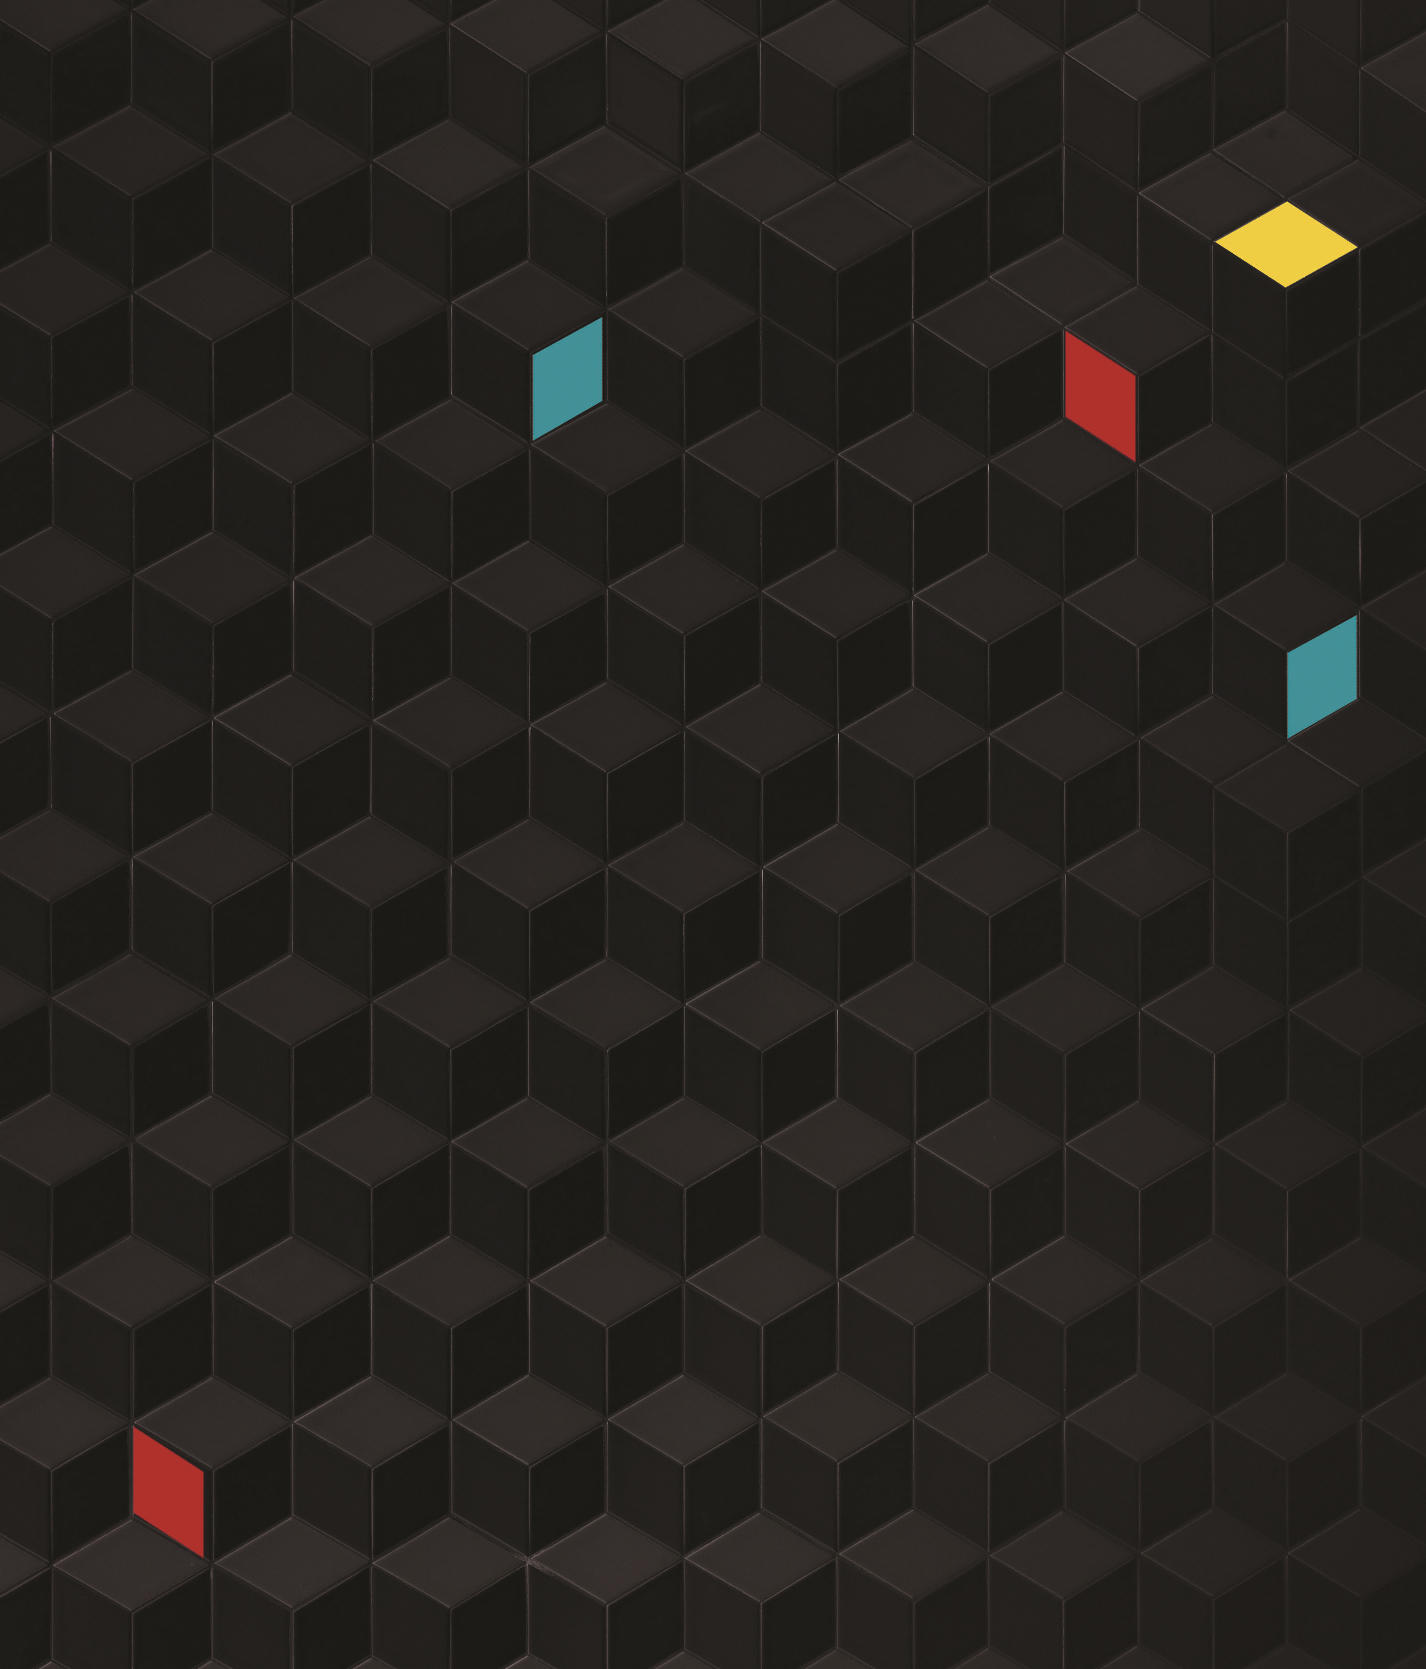 Cube black ceramic tiles from kale architonic cube black by kale ceramic tiles dailygadgetfo Image collections